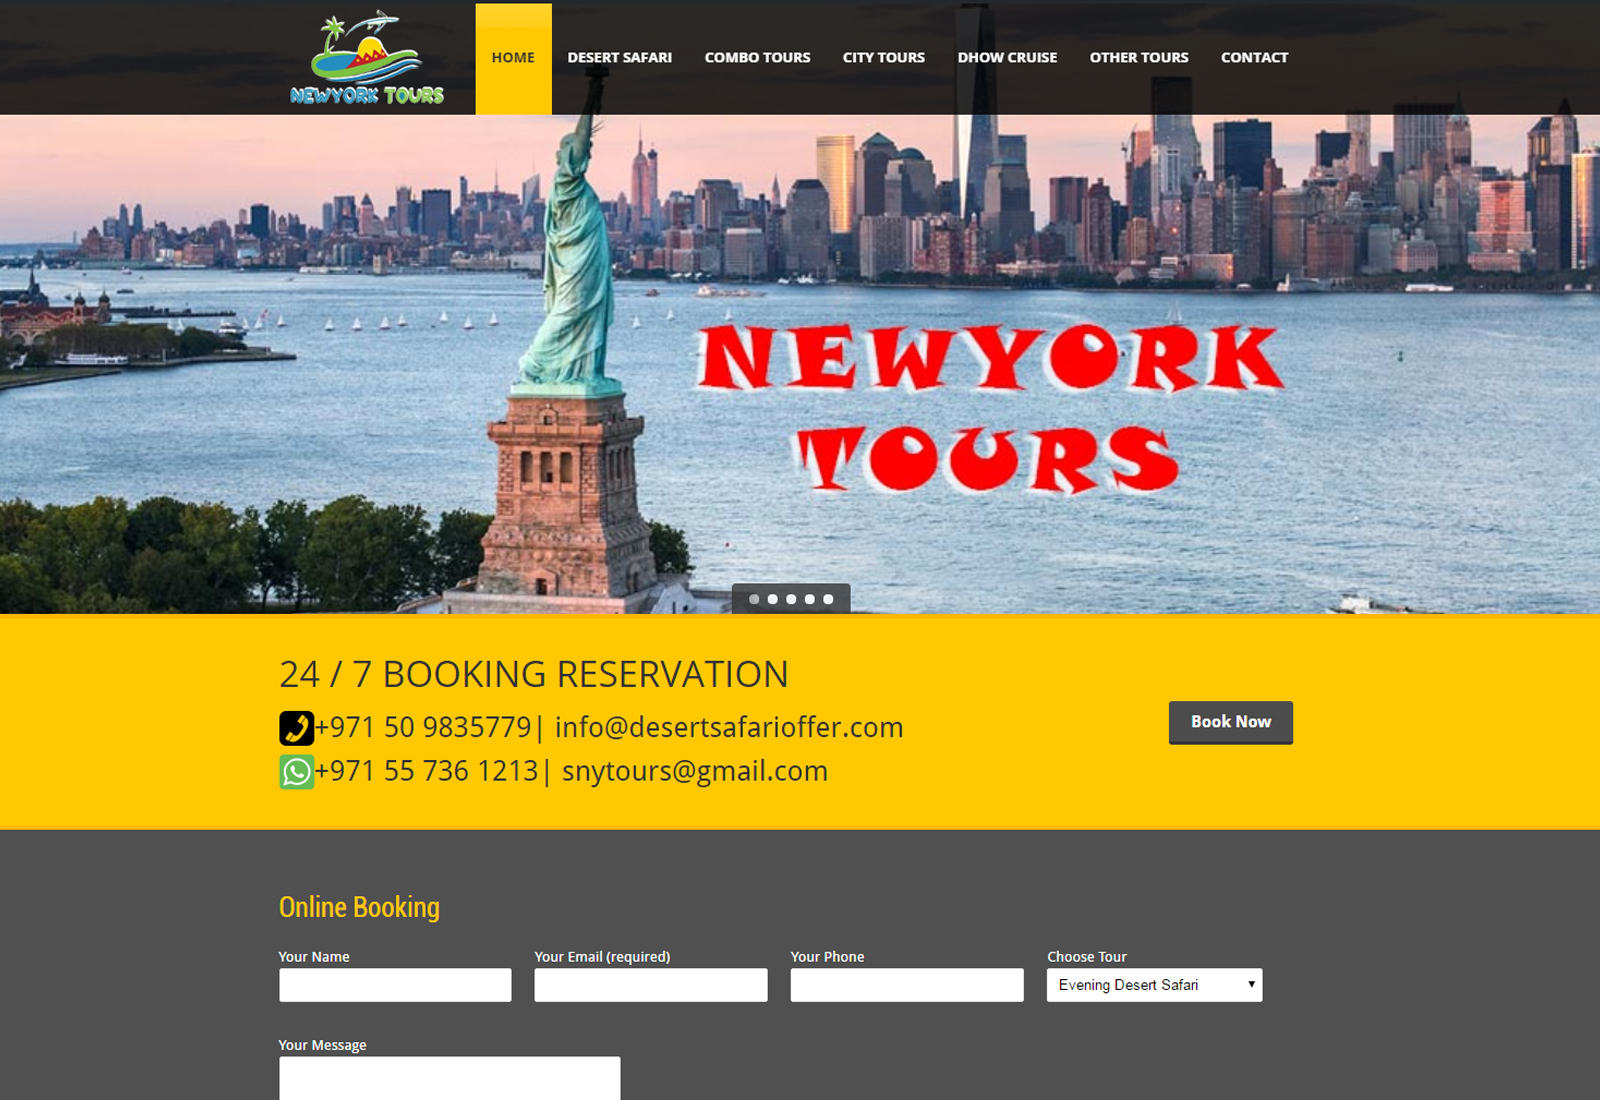 NewYork Tours | Desert Safari Offer